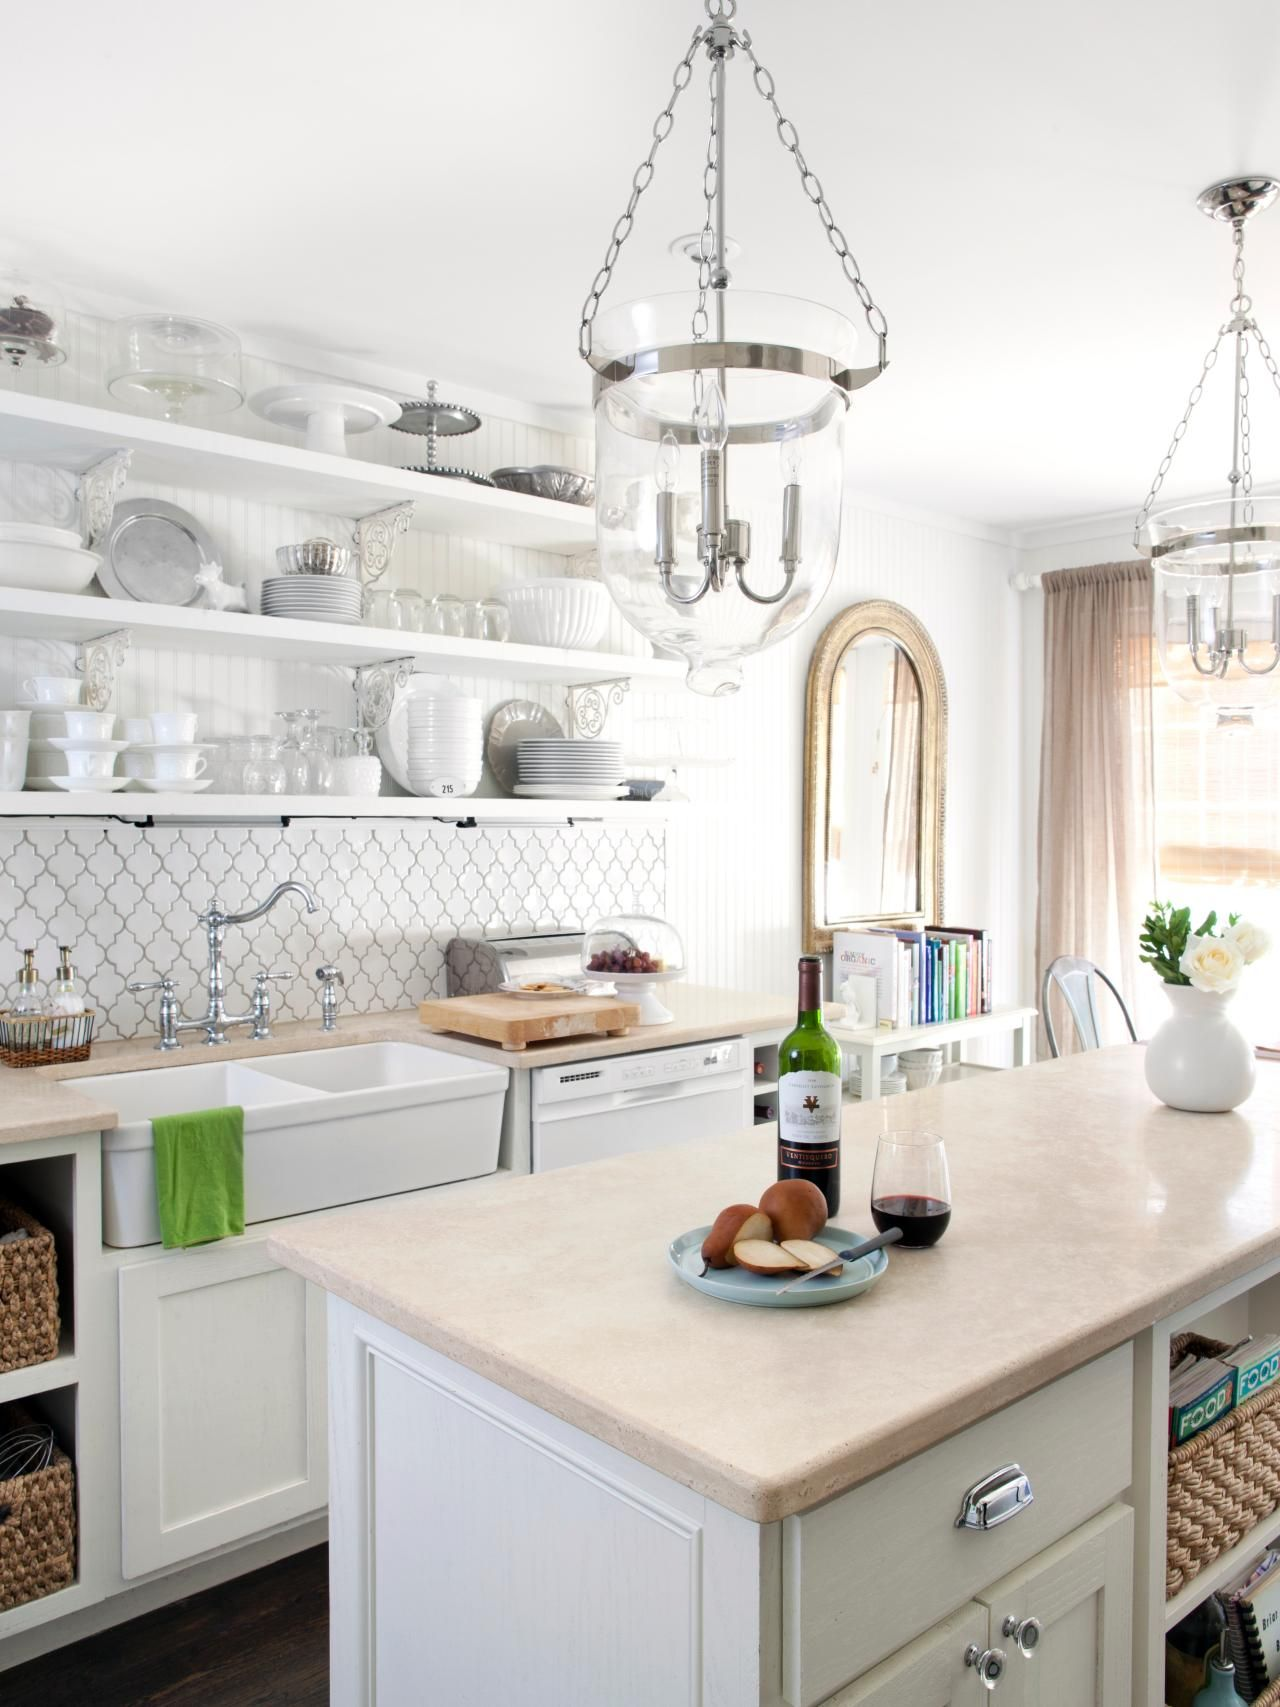 Pictures Of Kitchen Backsplash Ideas From Cheap Kitchen